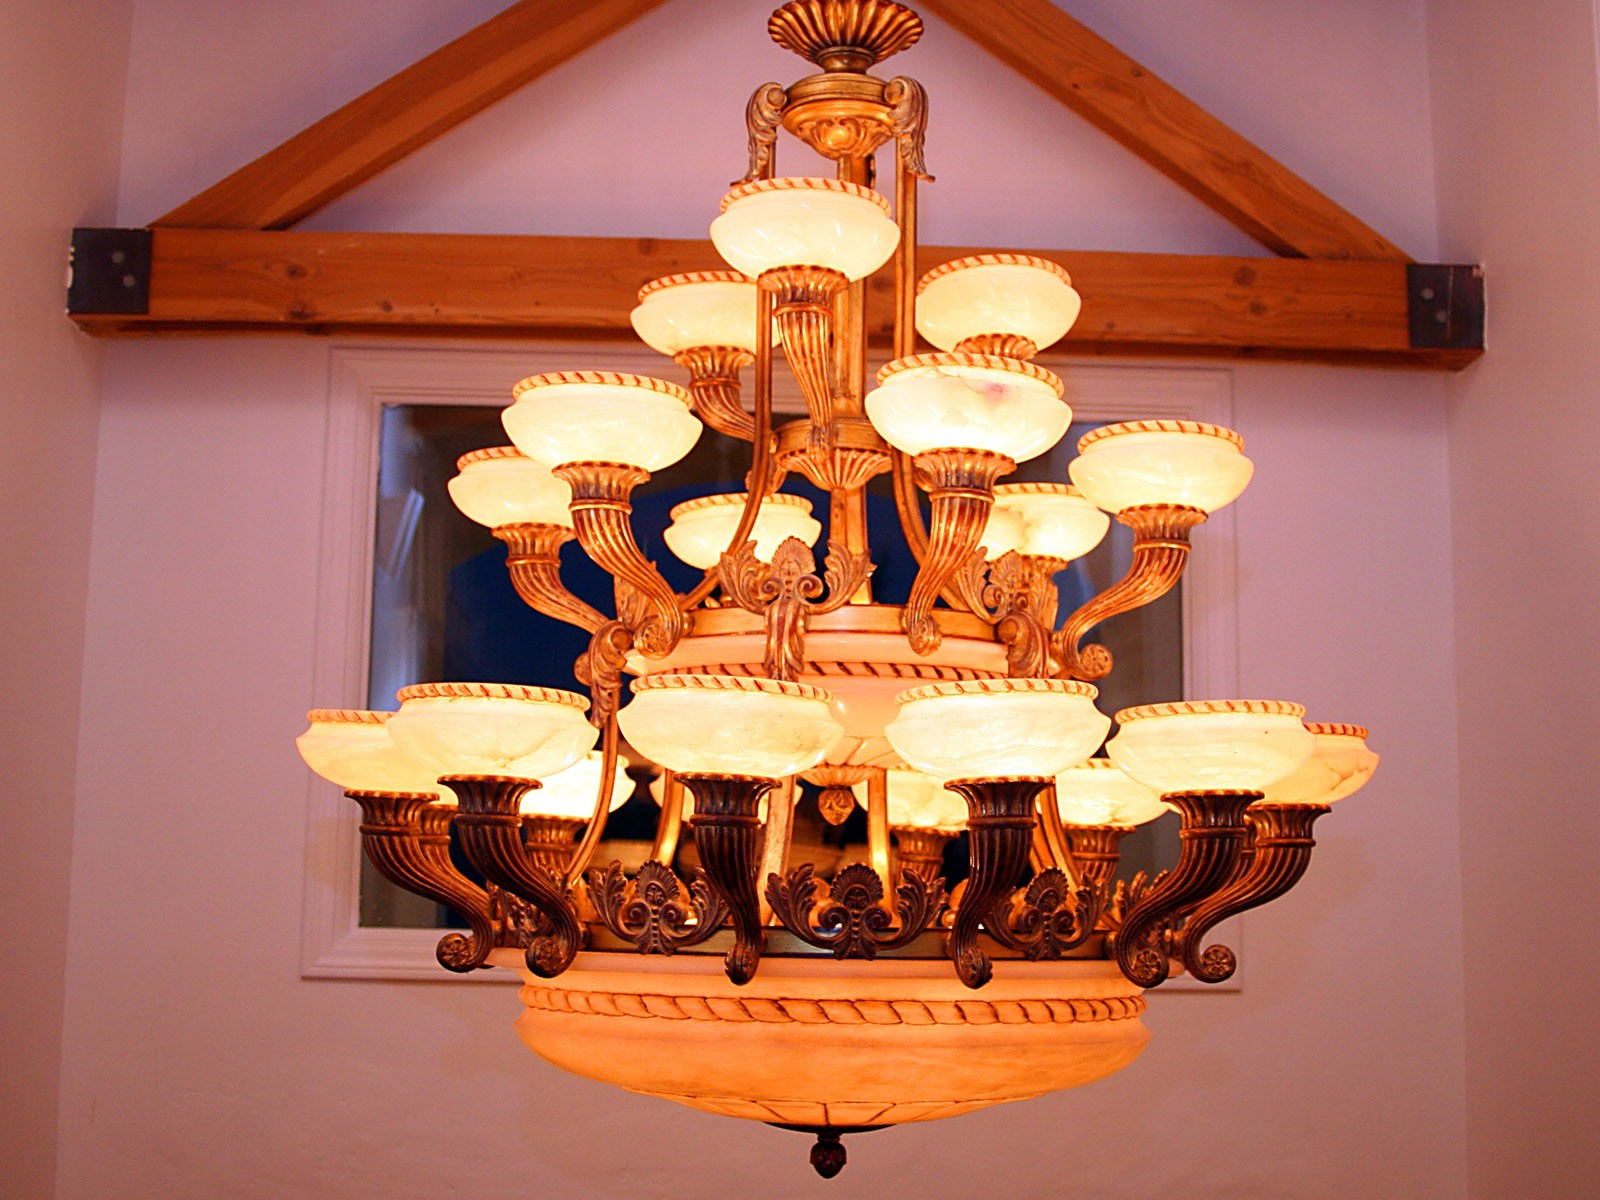 Chandeliers basics narrowing the choices certified lighting remember that chandeliers are normally used to create some gentle ambient light so you might need some more light sources to arrange the correct lighting arubaitofo Choice Image